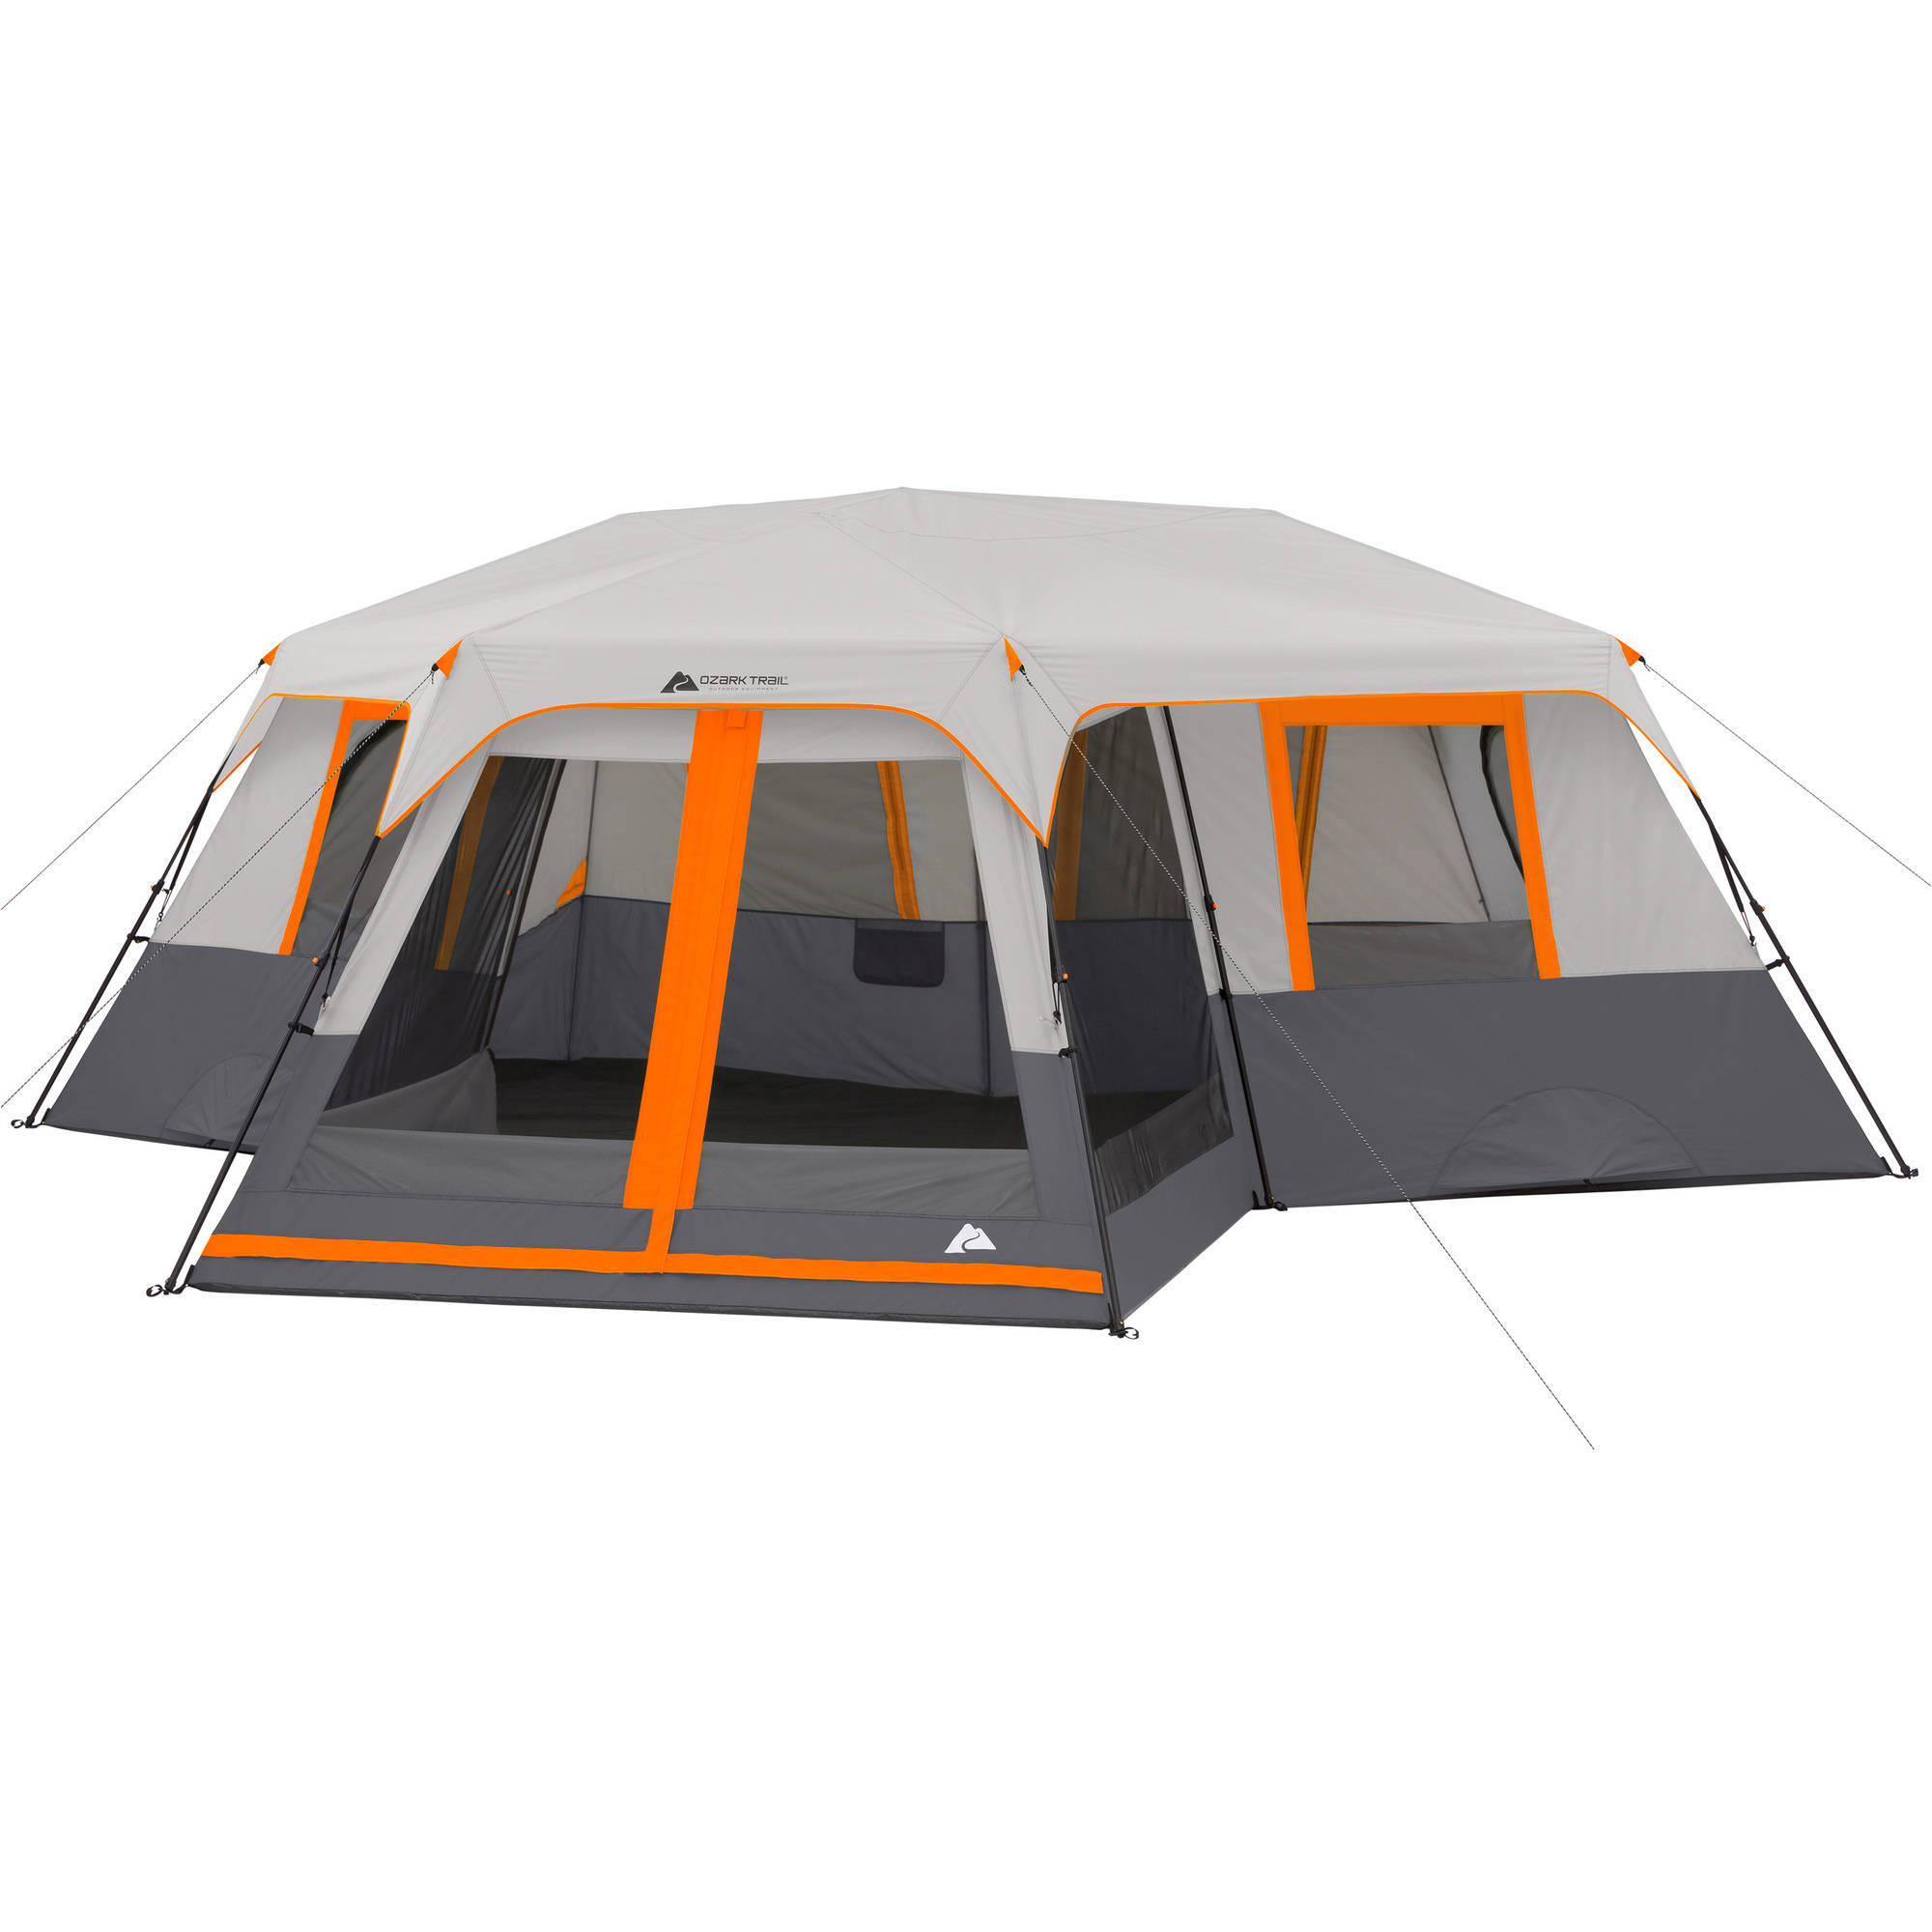 Ozark Trail 12-Person 3-Room Instant Cabin Tent with Screen Room  sc 1 st  Walmart : eureka dining tent - memphite.com